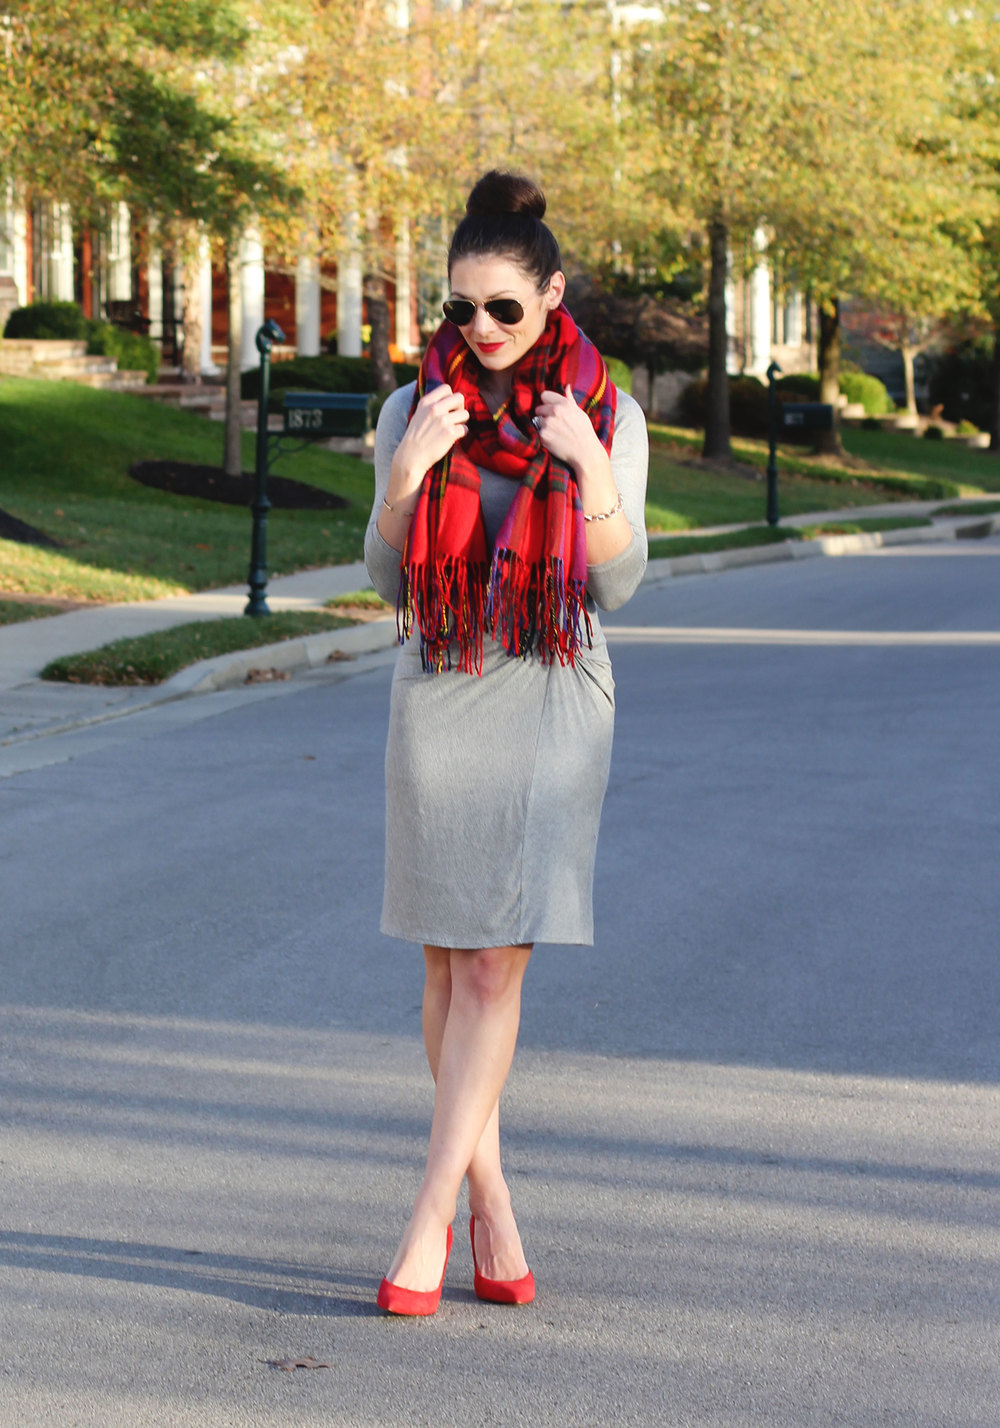 Christmas dress casual - Anthropologie Amadi Knotted Knit Dress Plaid Blanket Scard Red Jessica Simpson Claudette Pumps